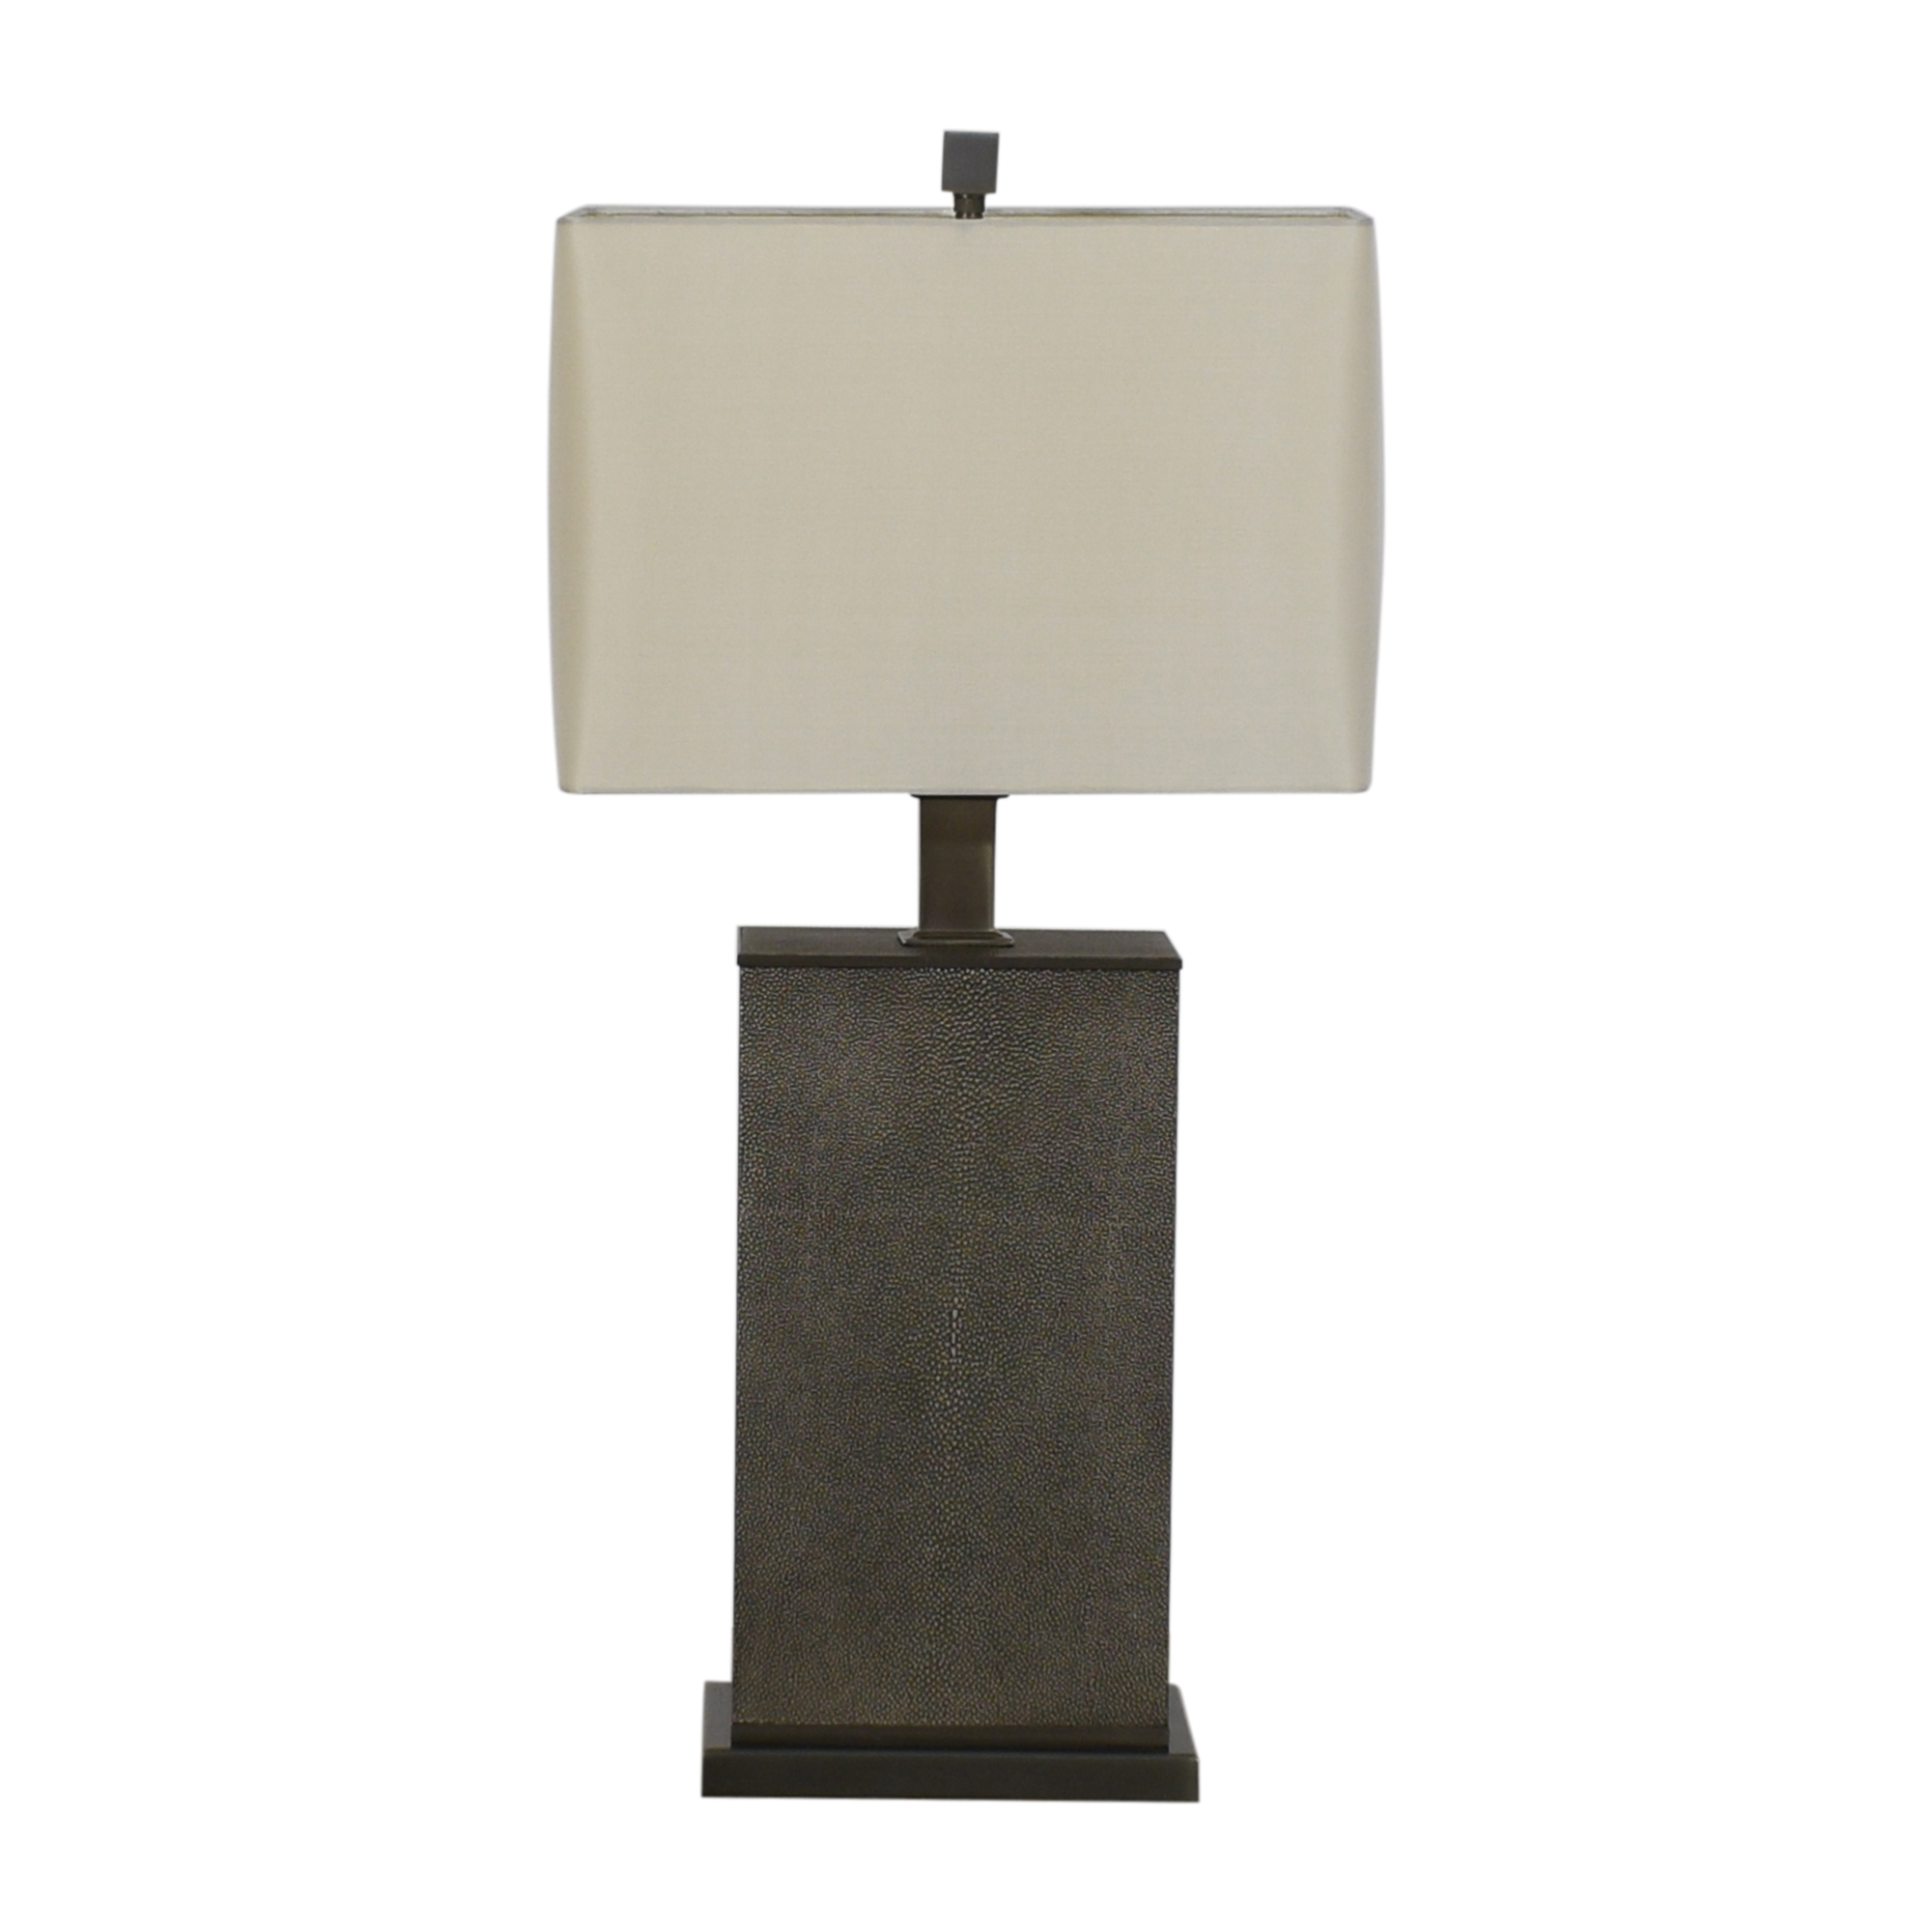 buy Restoration Hardware Delano Shagreen Rectangular Table Lamp Restoration Hardware Lamps